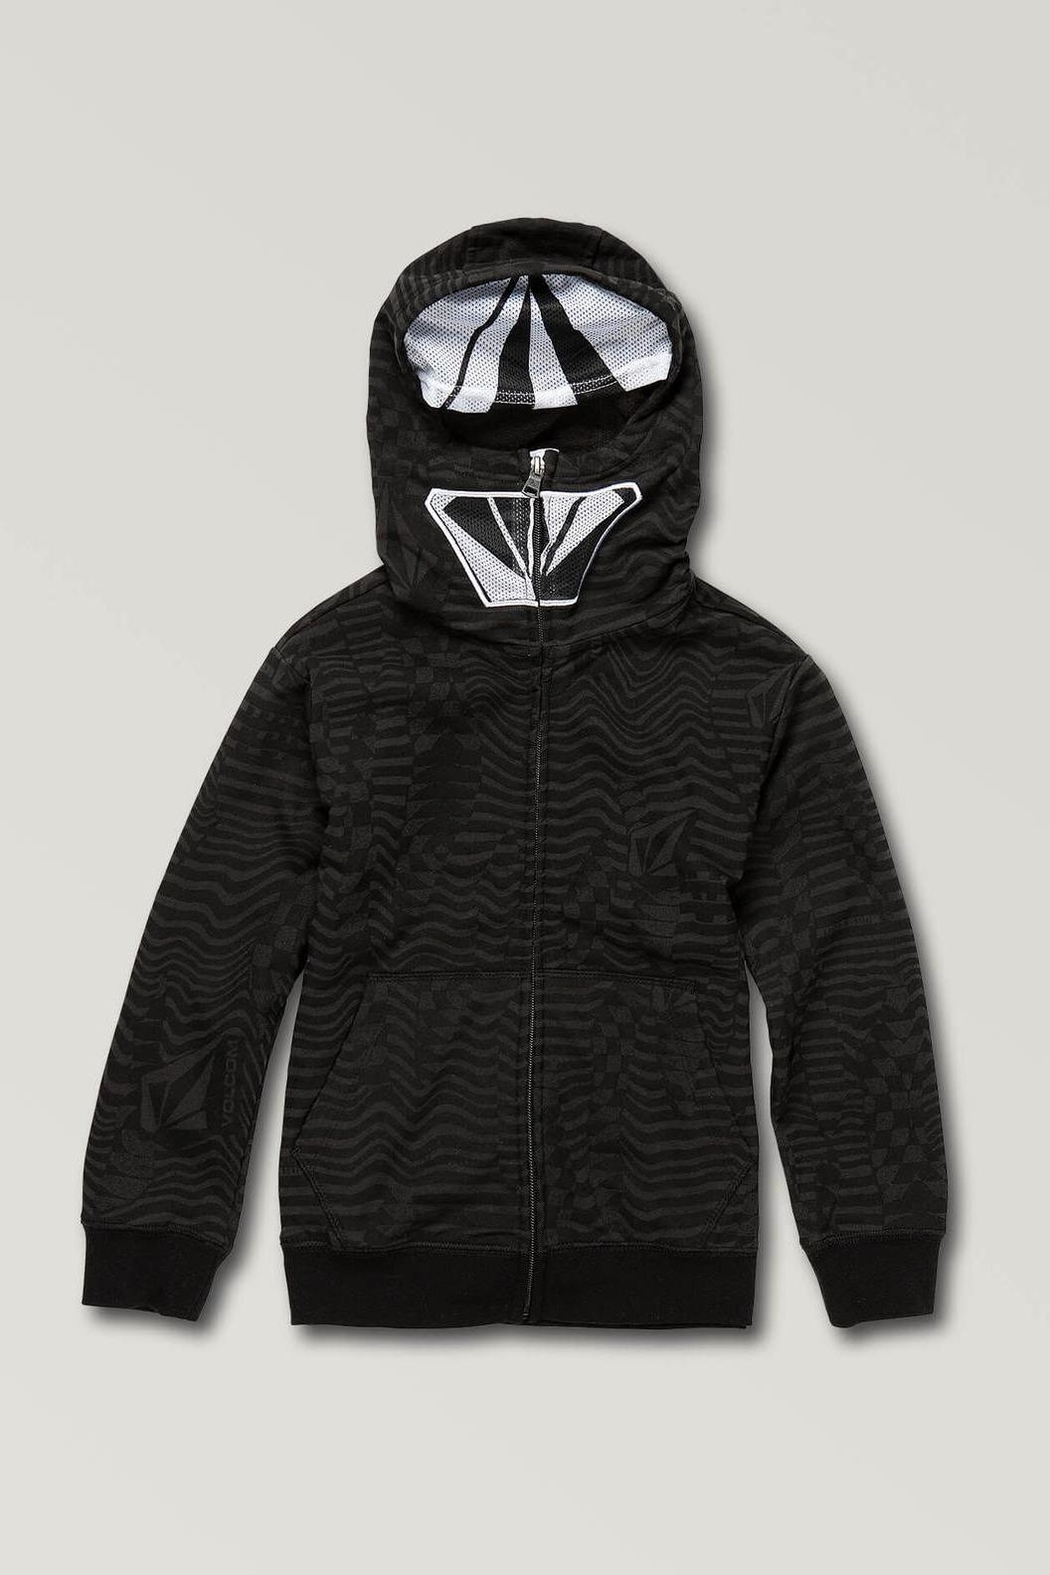 Volcom Boys Zip Up - Front Cropped Image